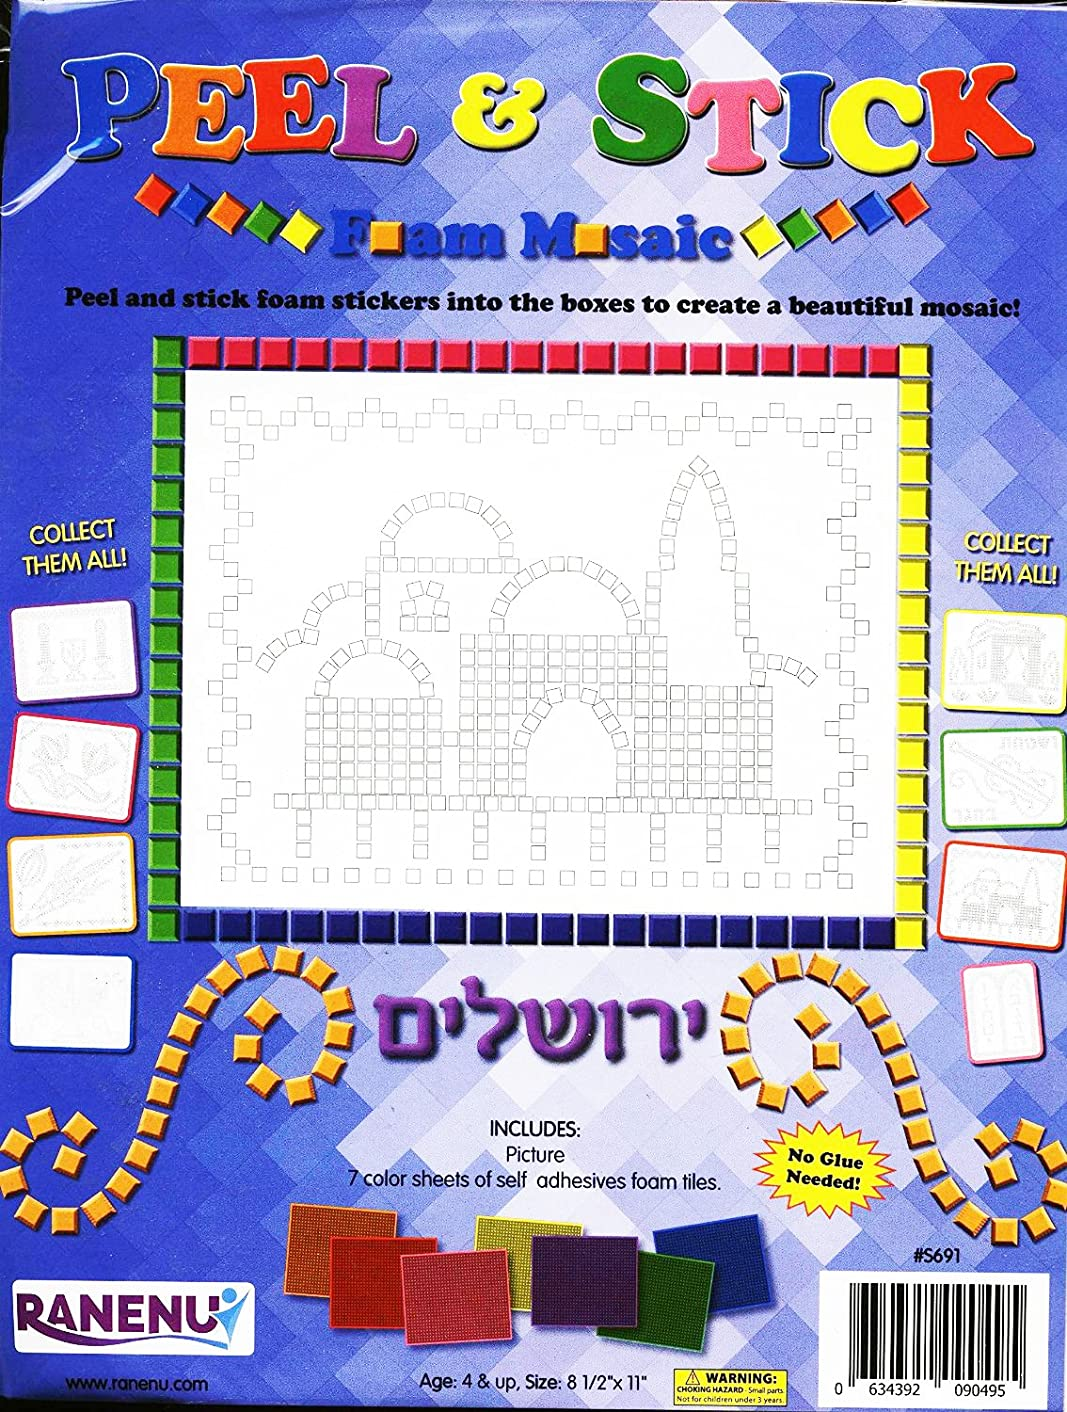 Judaica Mega Mall Beautiful Peel & Stick Foam Mosaic Jerusalem Activity Set